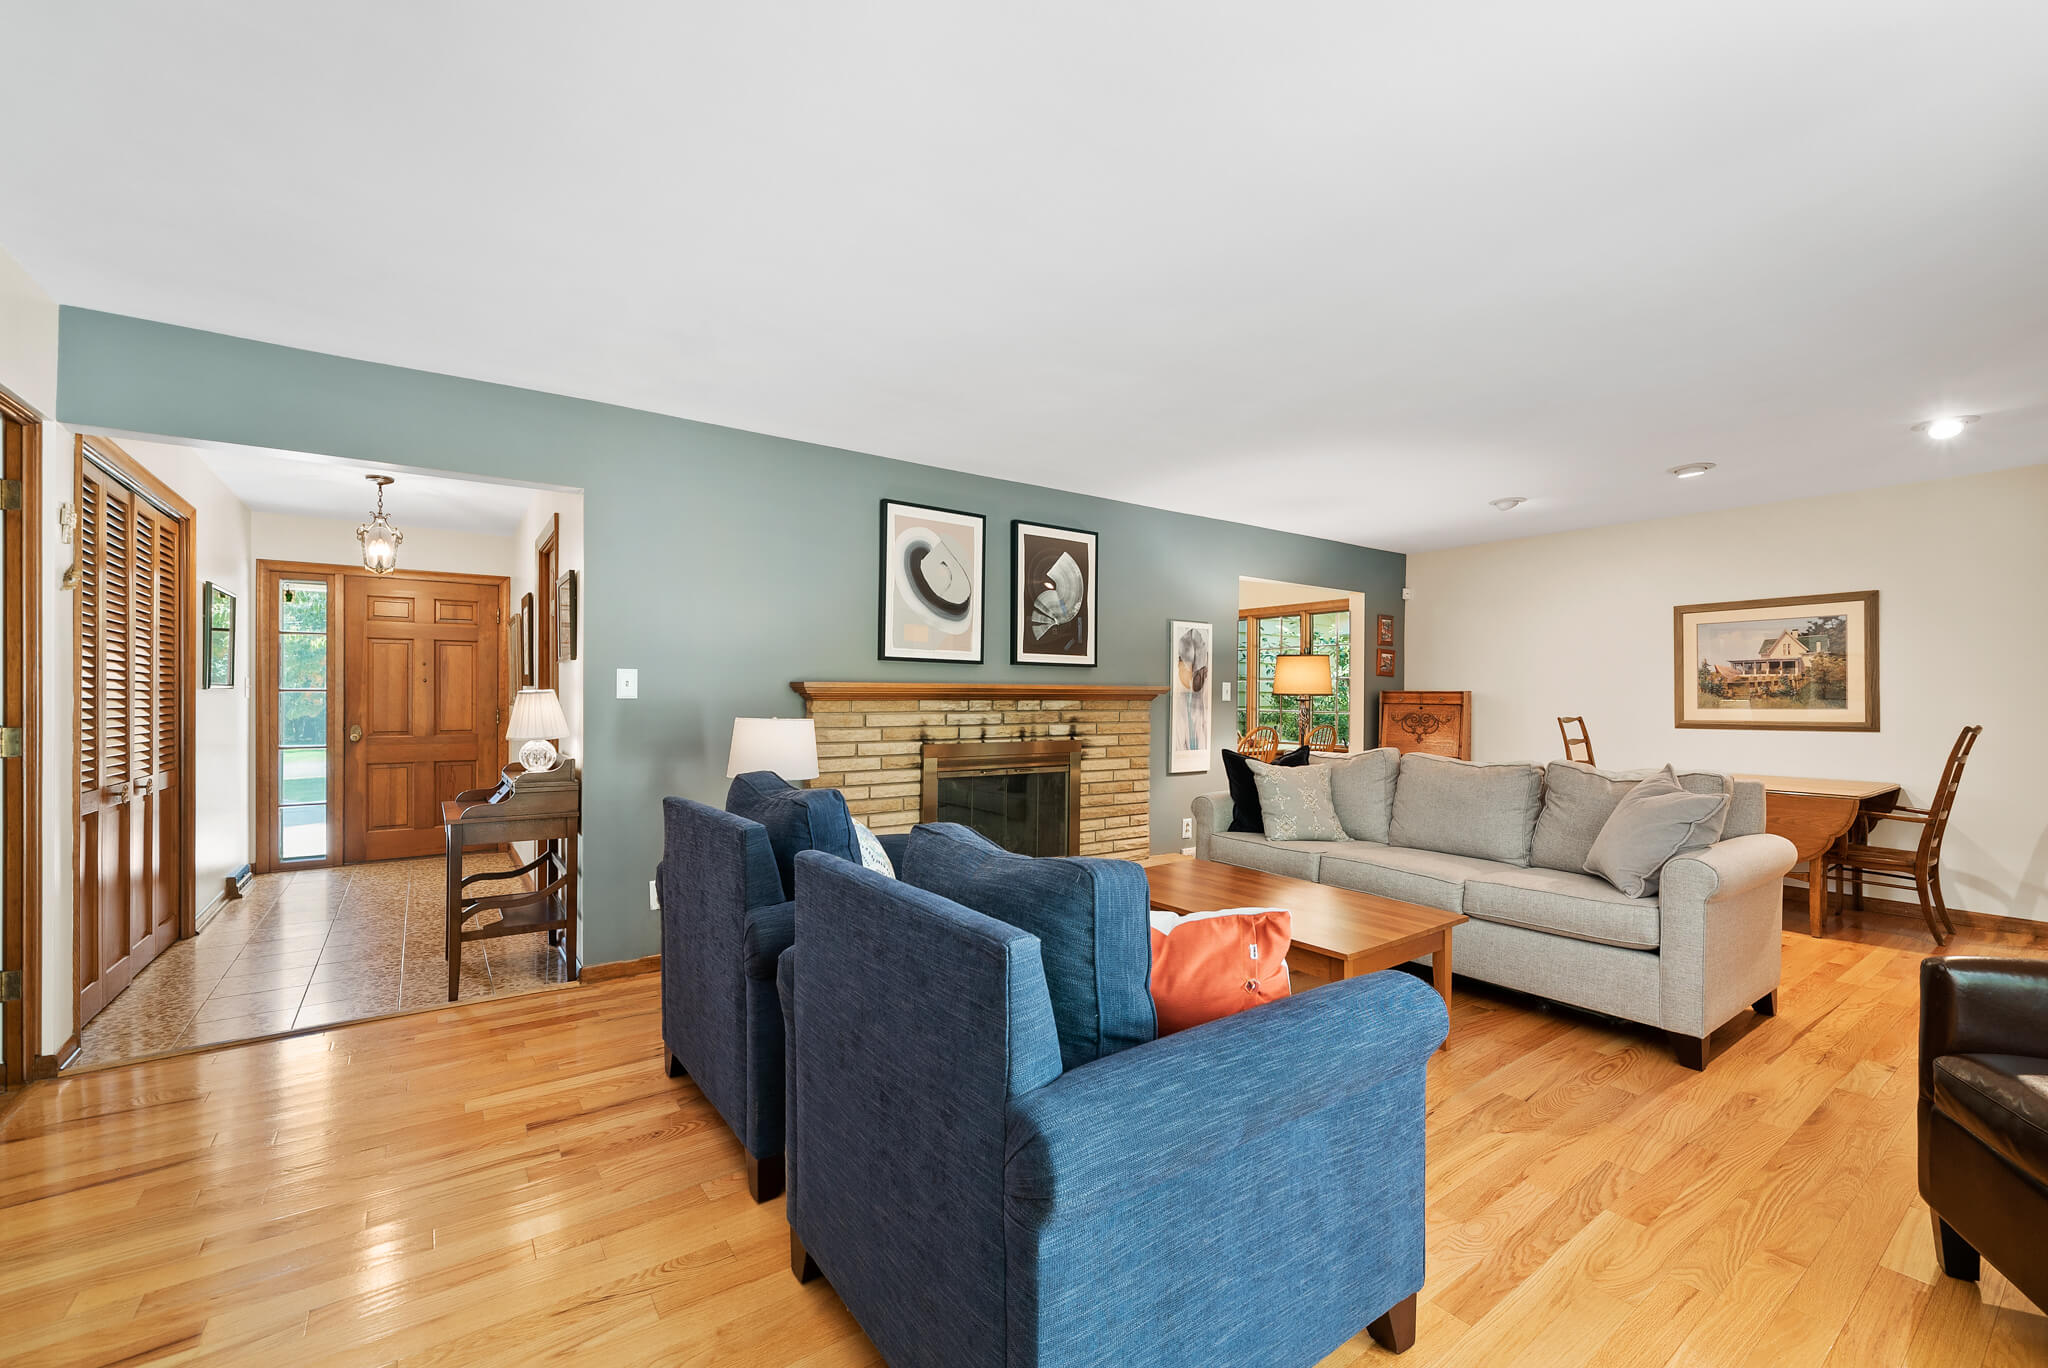 Family room with fireplace at 4349 Orandale Dr in Chagrin Falls